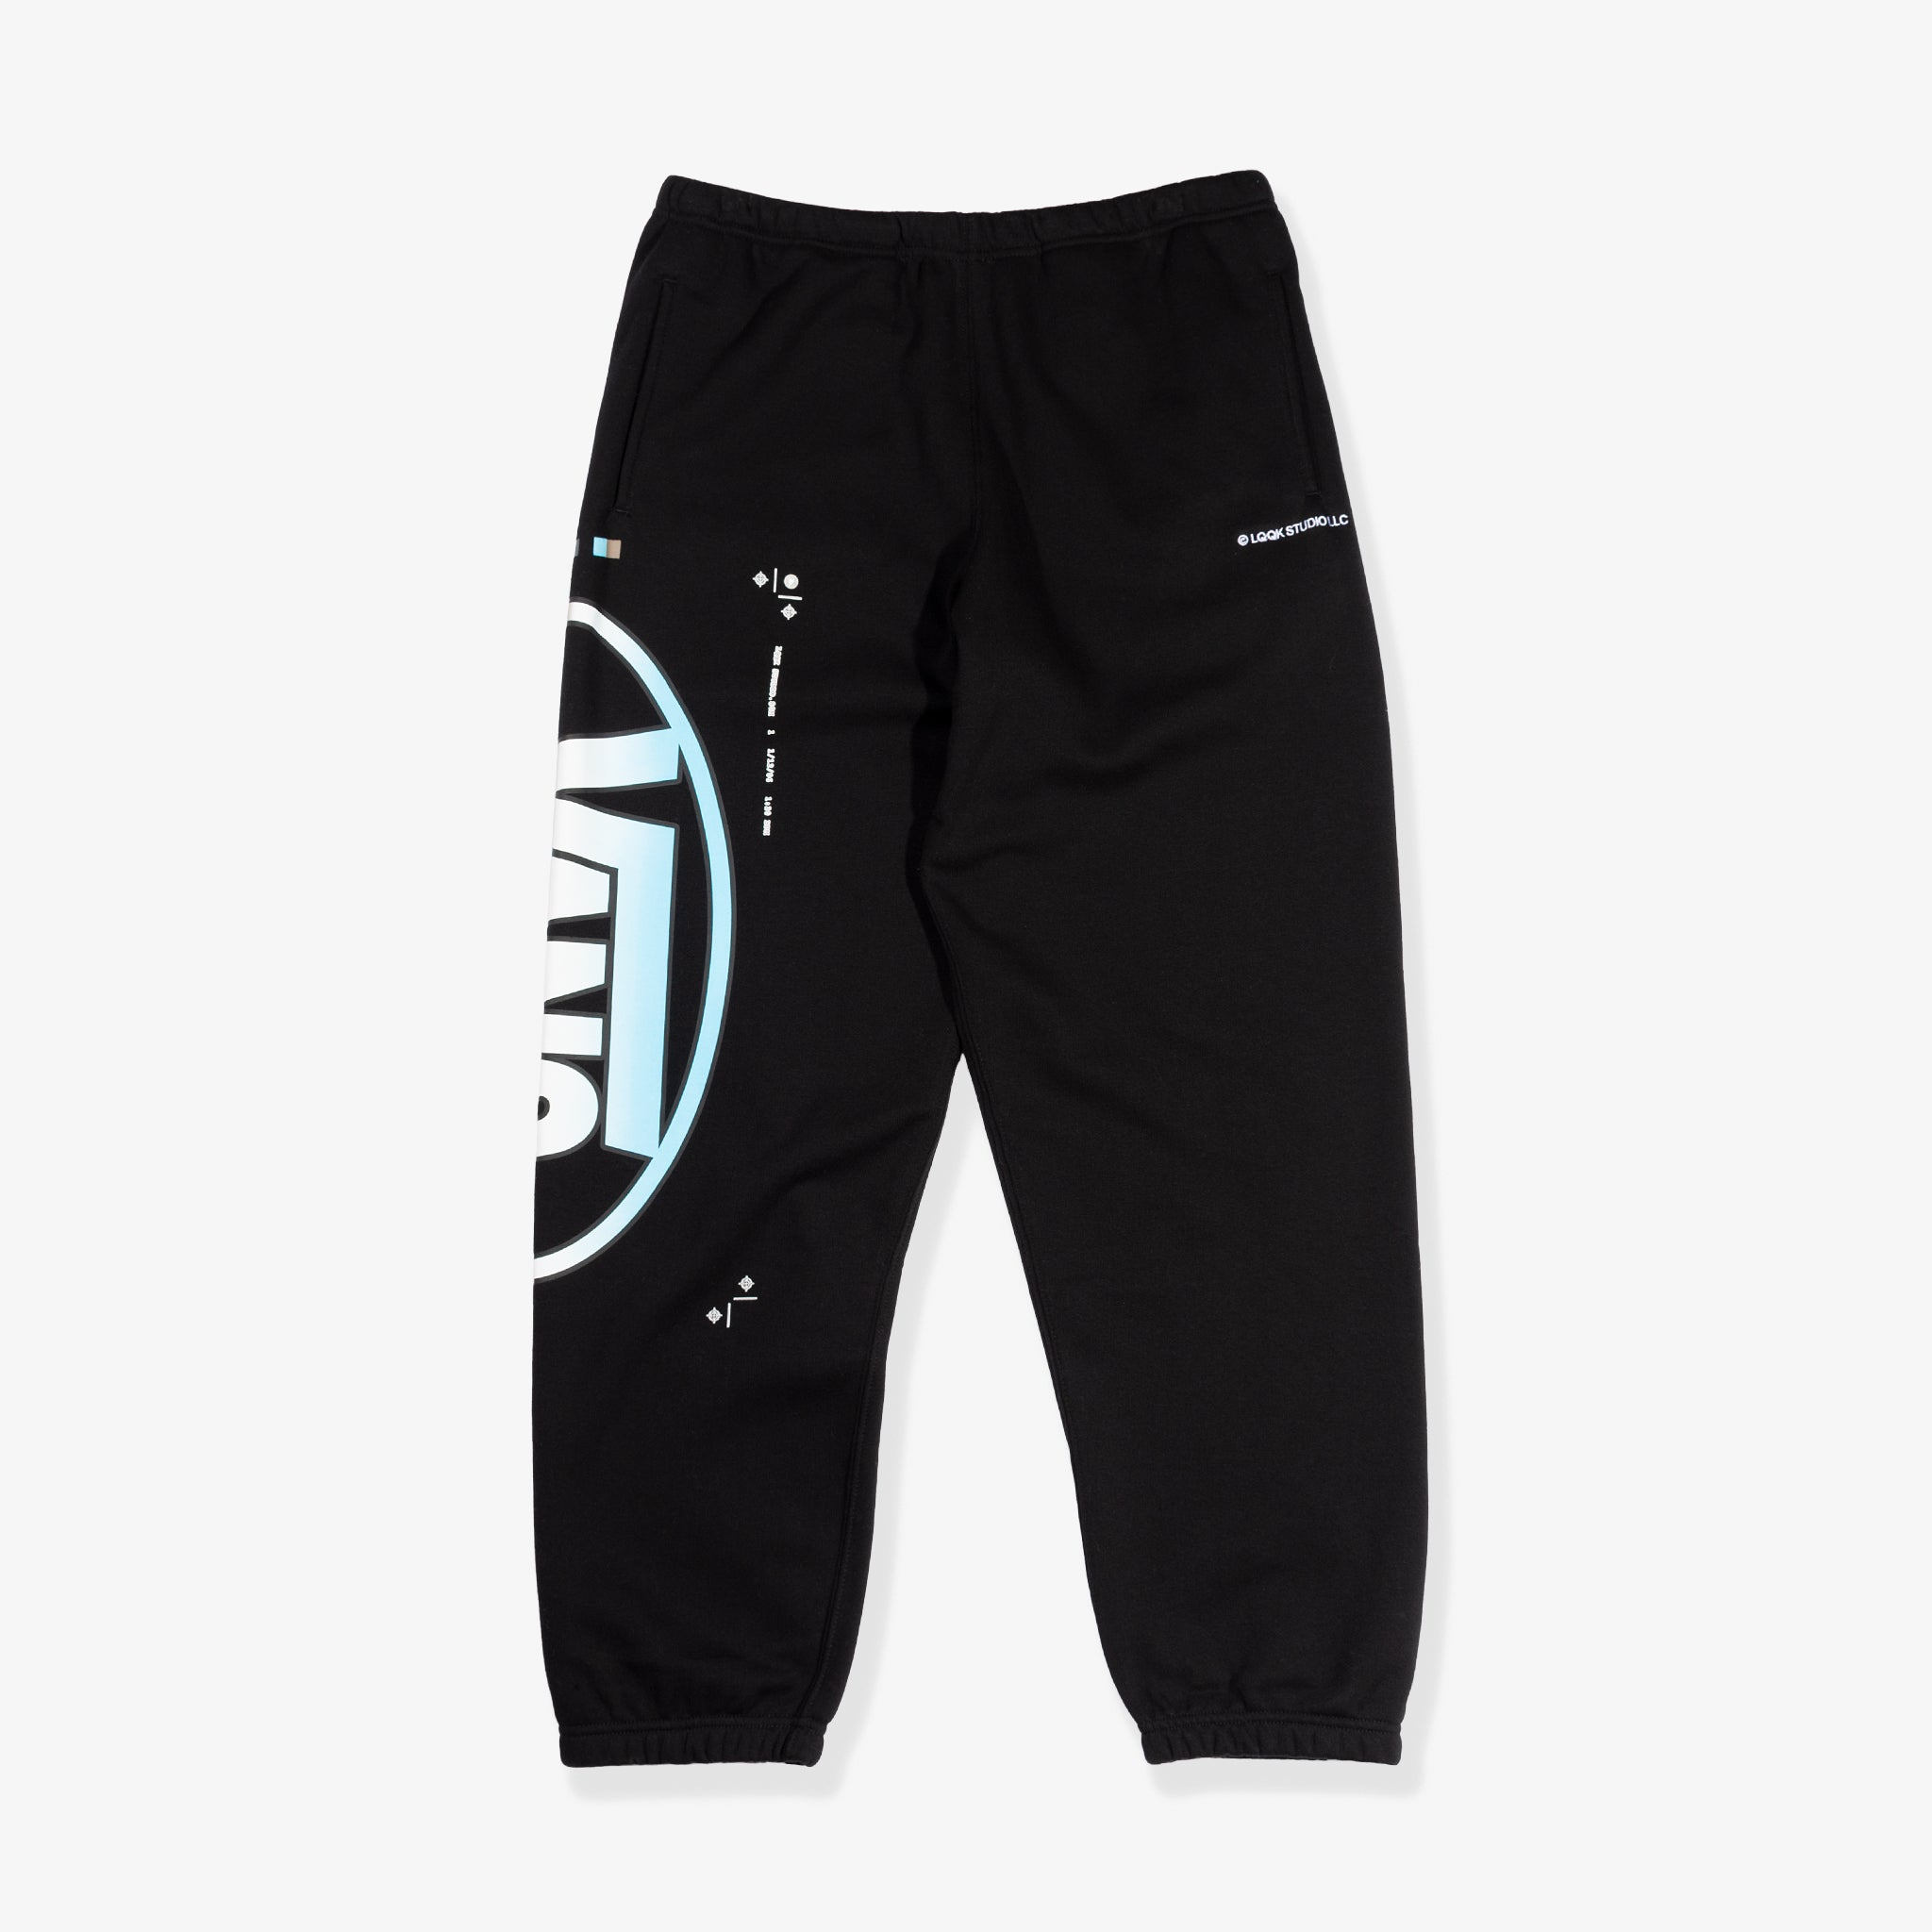 LQQK Sweatpants (Black)